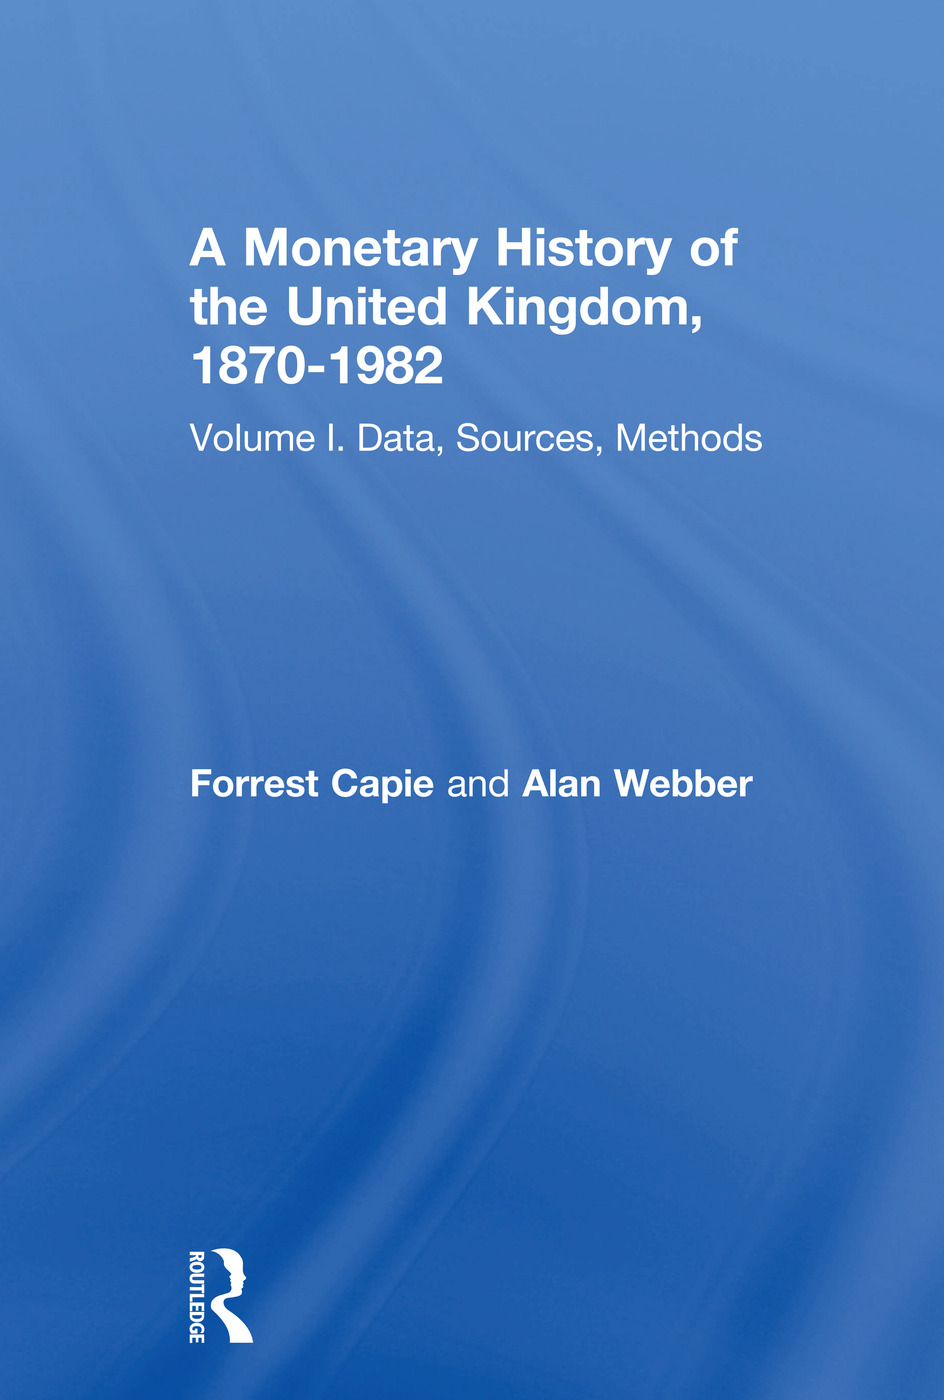 A Monetary History of the United Kingdom, 1870-1982: Volume I. Data, Sources, Methods (Hardback) book cover